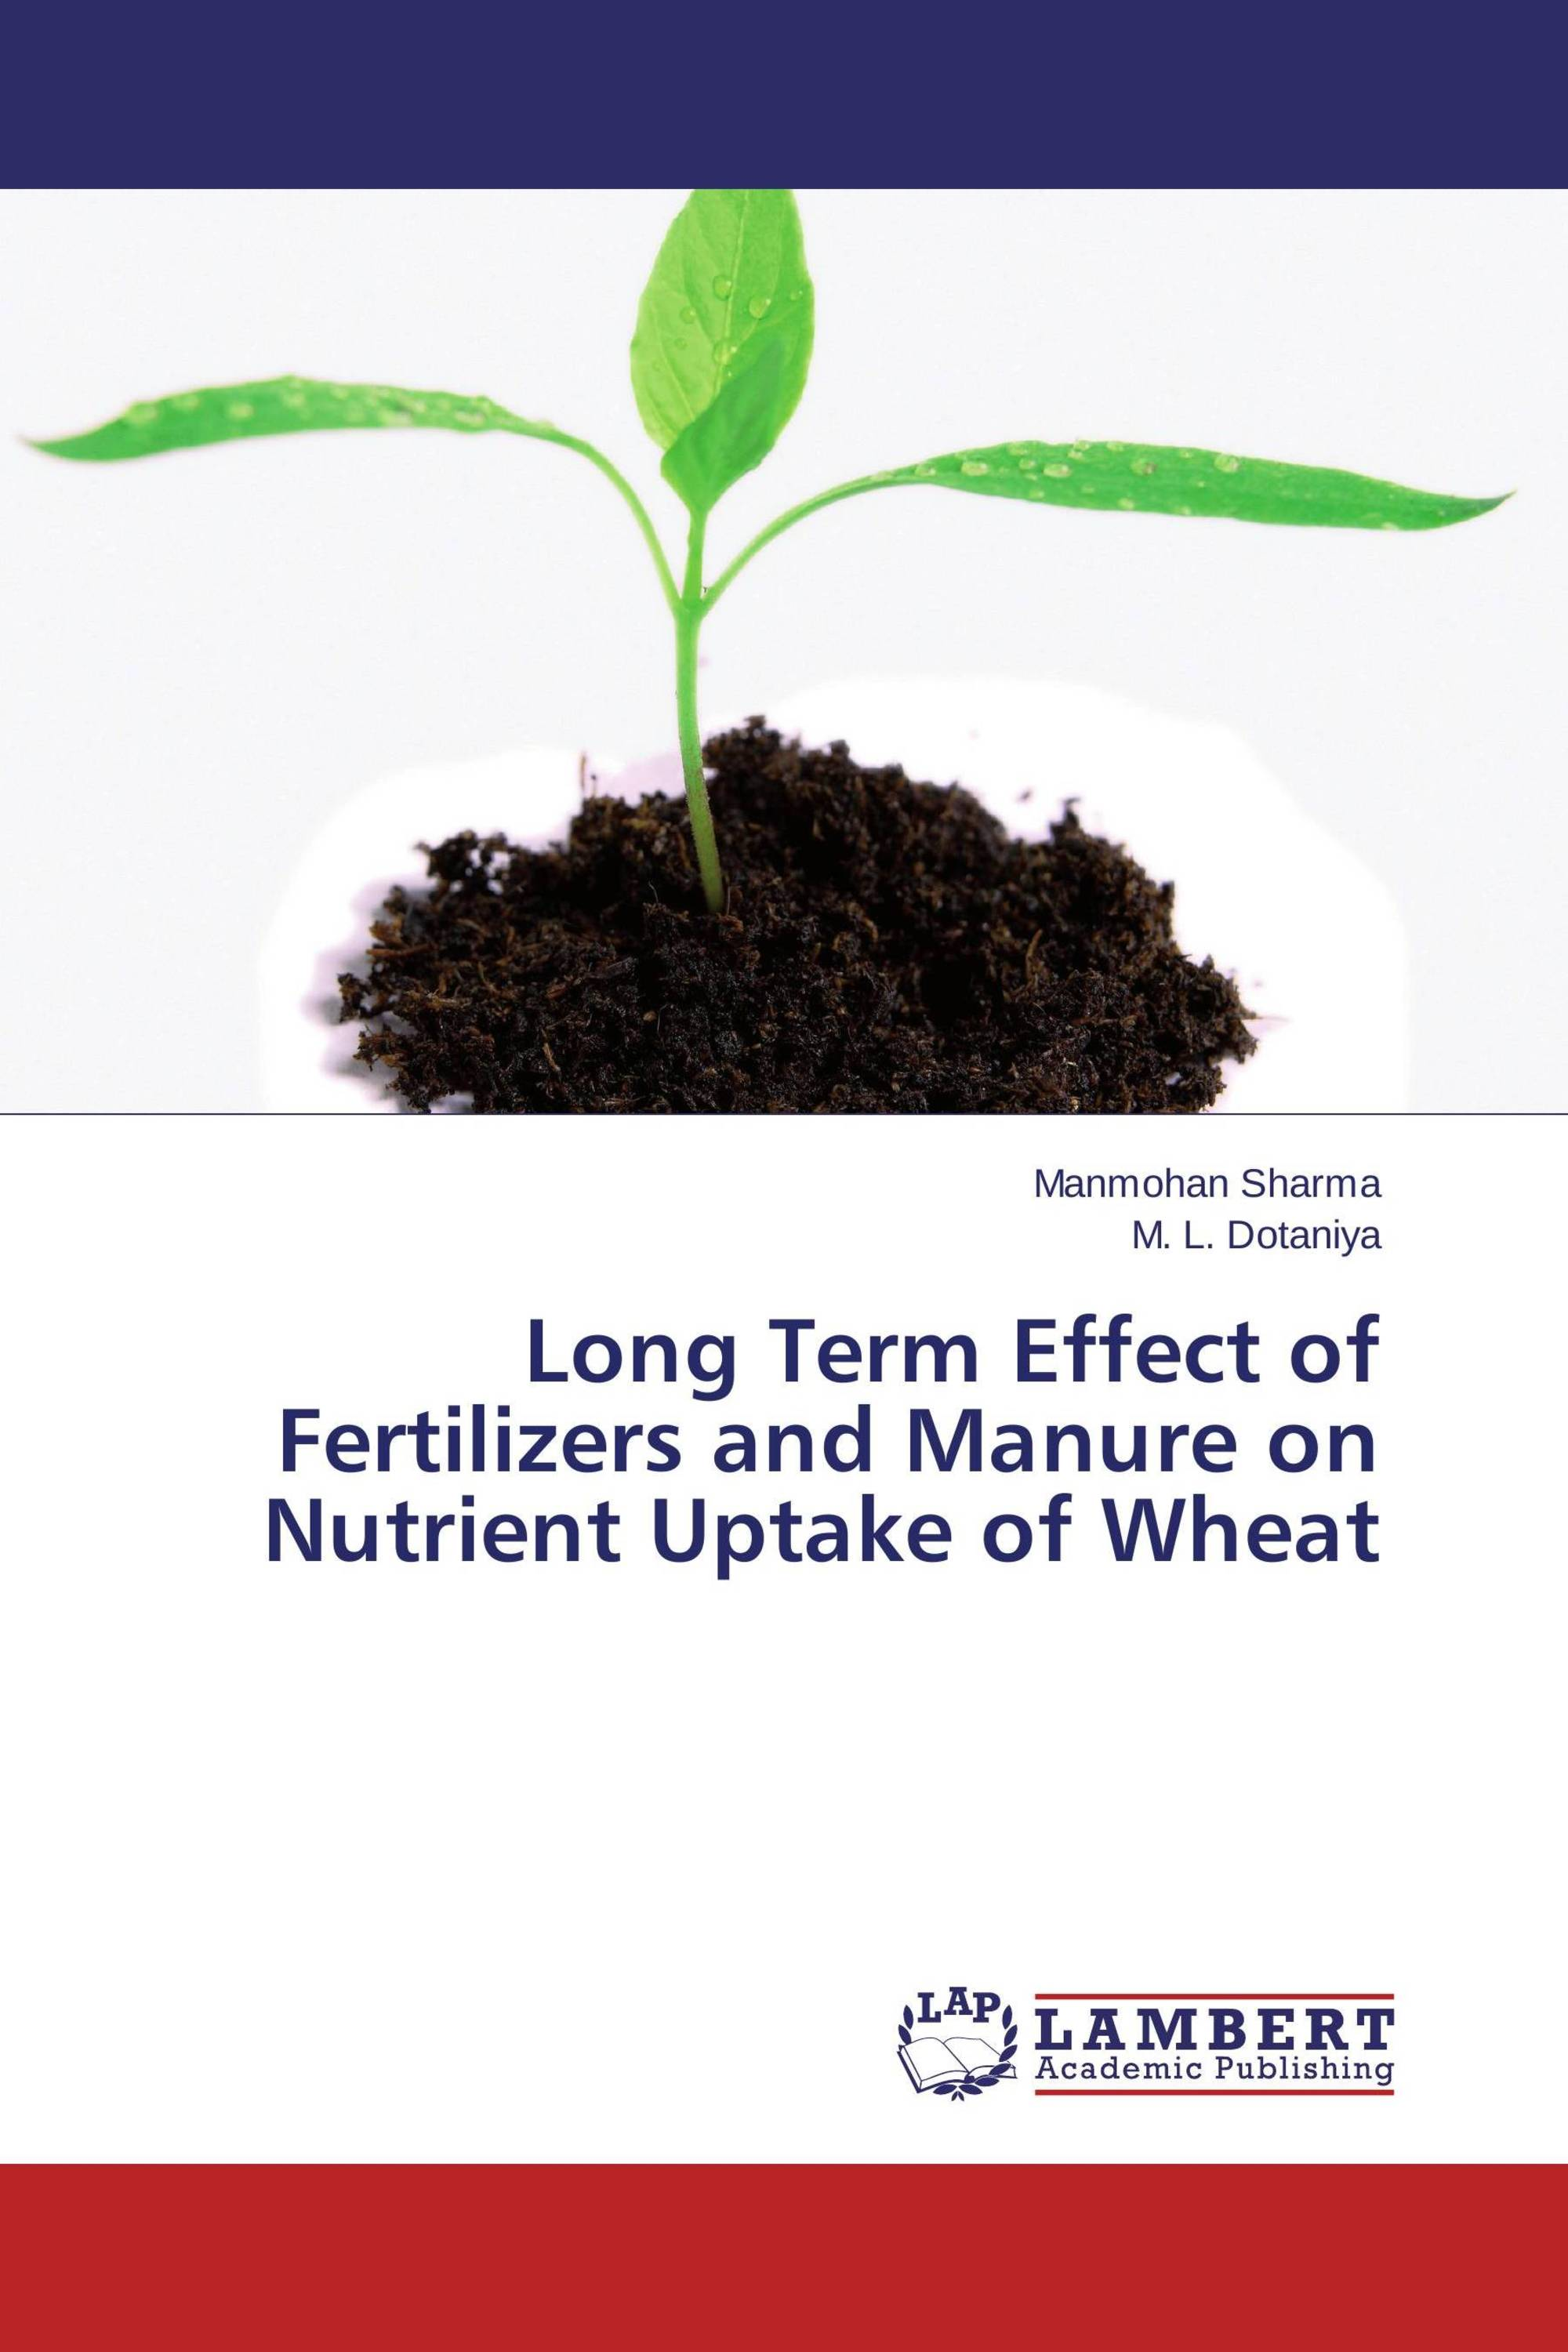 Long Term Effect of Fertilizers and Manure on Nutrient Uptake of Wheat